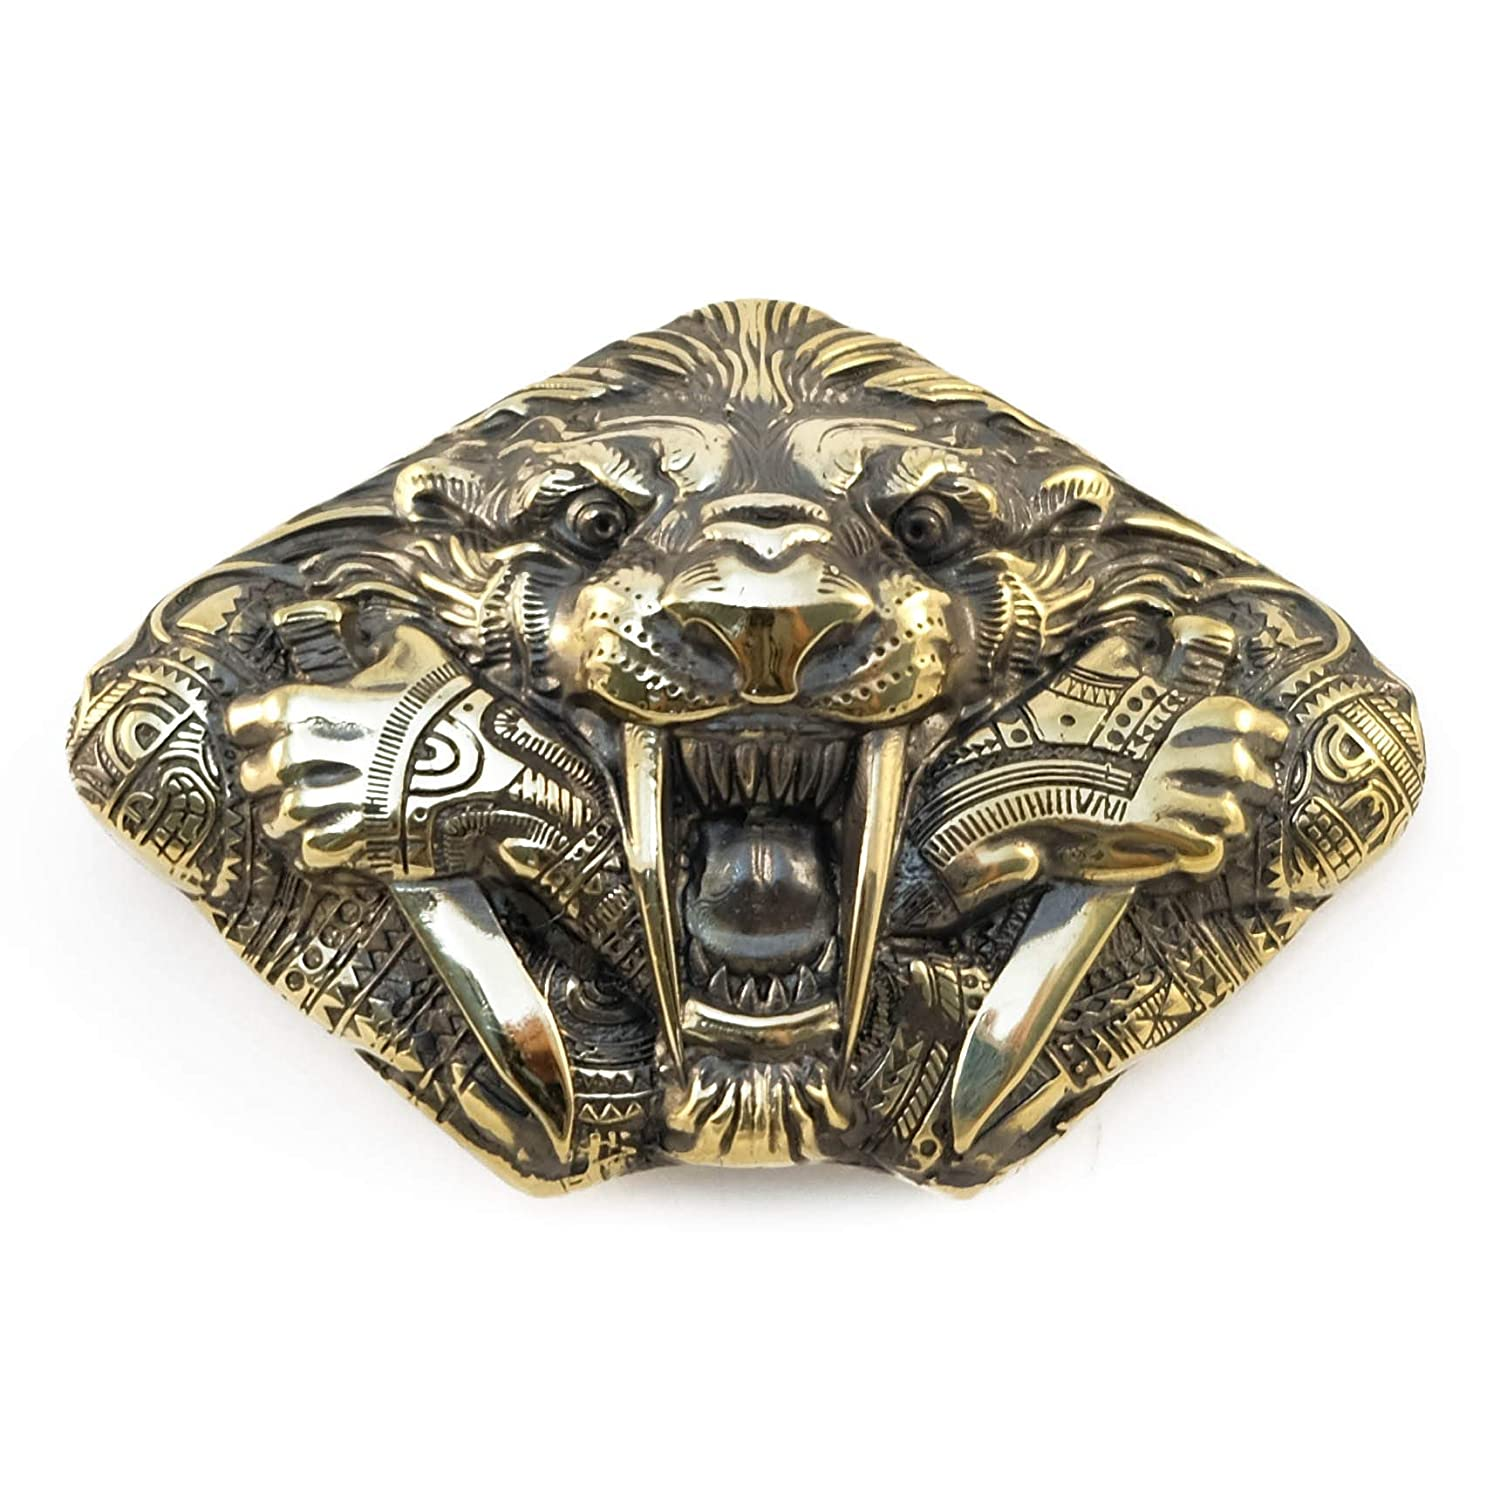 Belt buckle Steel fangs, Handmade wild animal tiger solid brass belt buckle